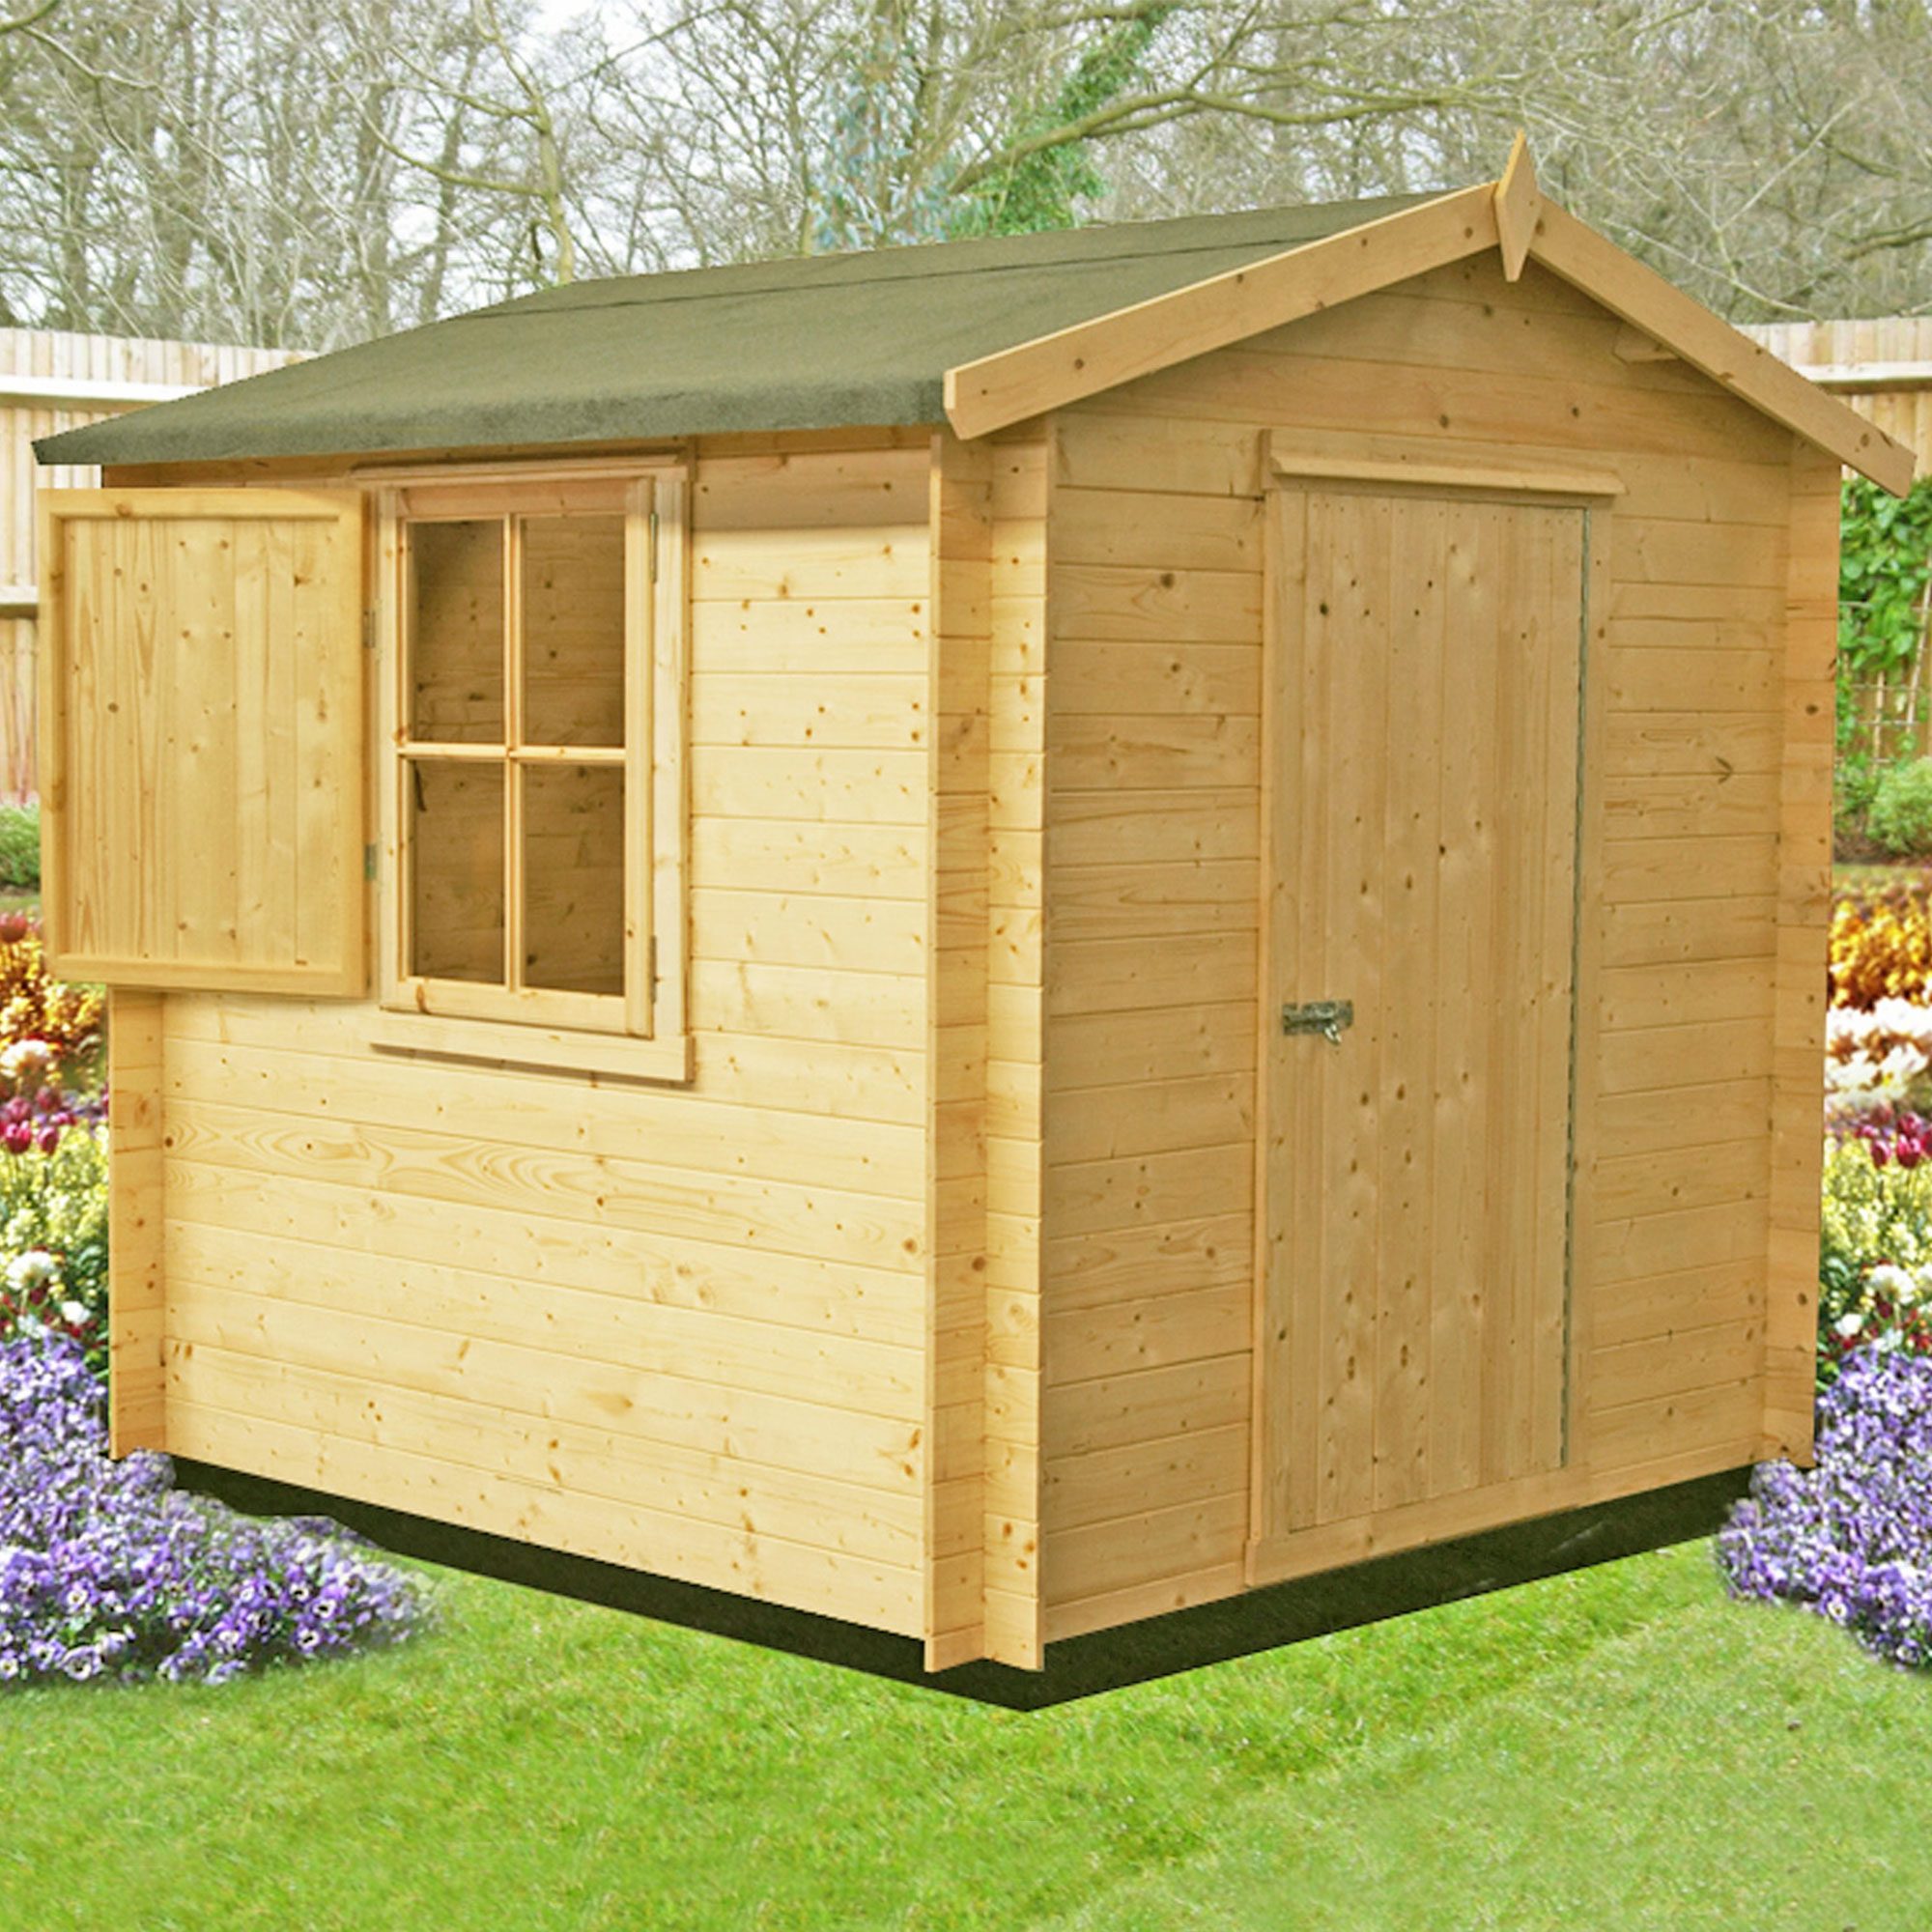 Image of 2.1x2.1m (7'x7') GardenStyle Camelot 19mm Log Cabin Shed